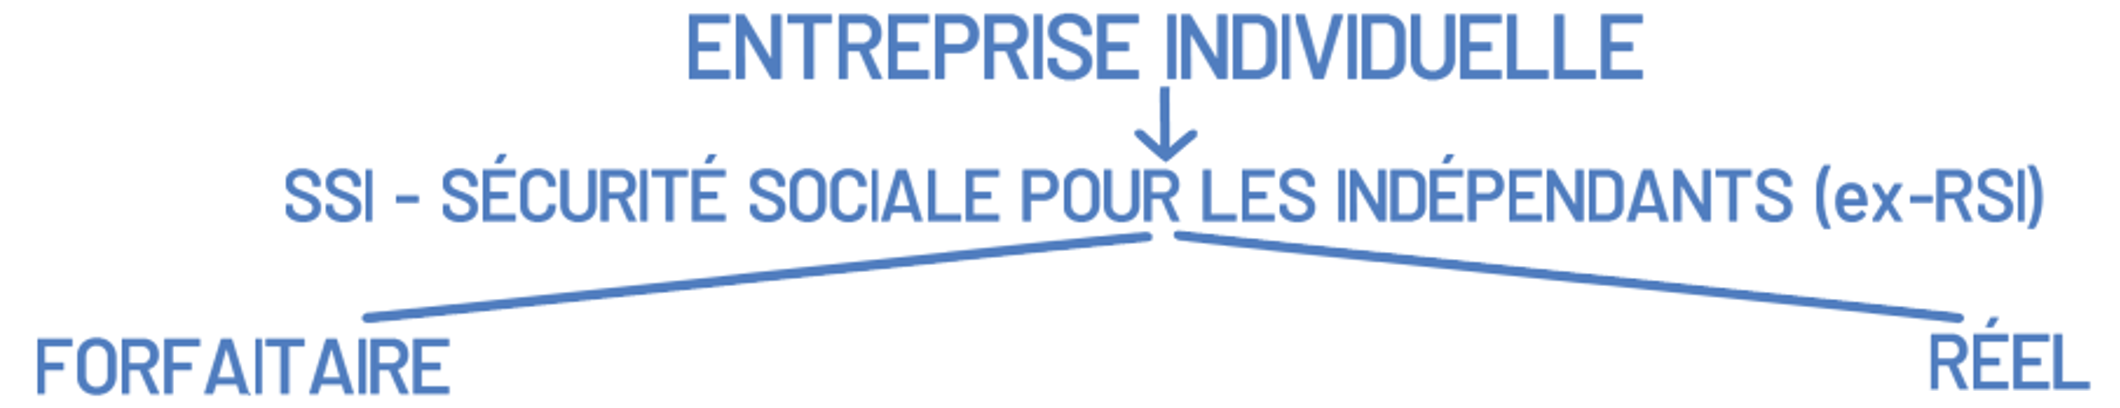 RSI entreprise individuelle